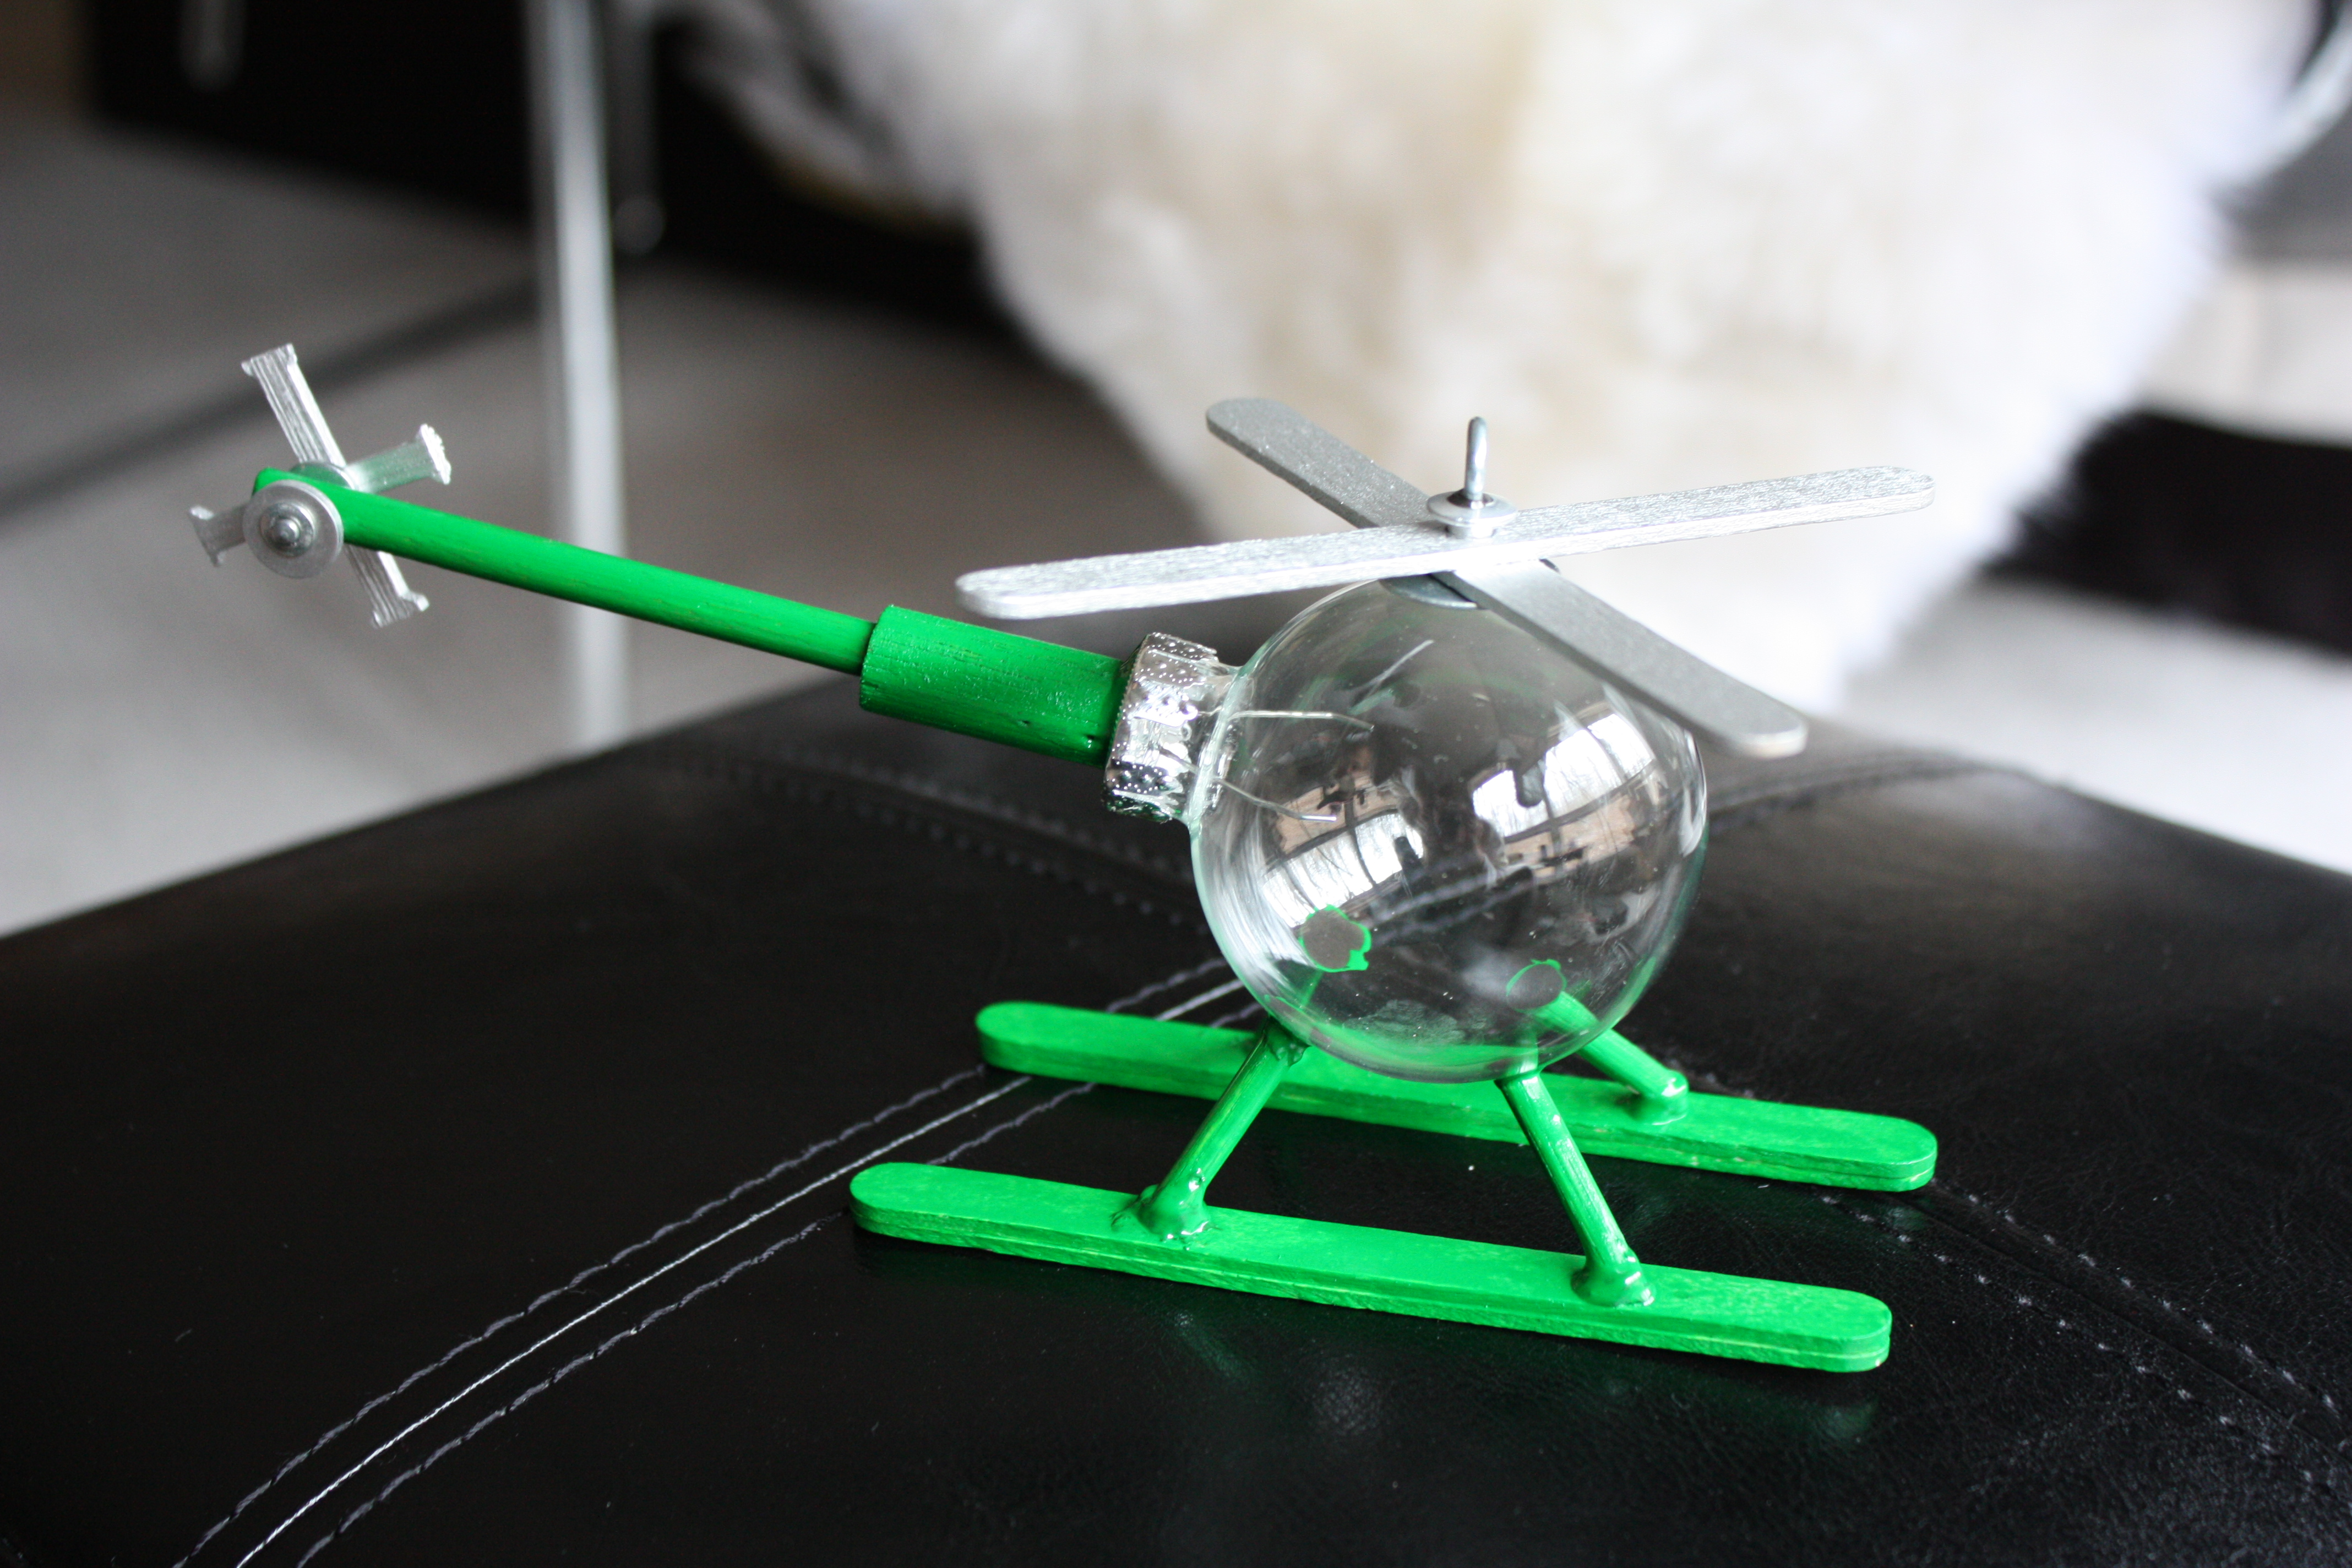 How to Make a Helicopter Ornament